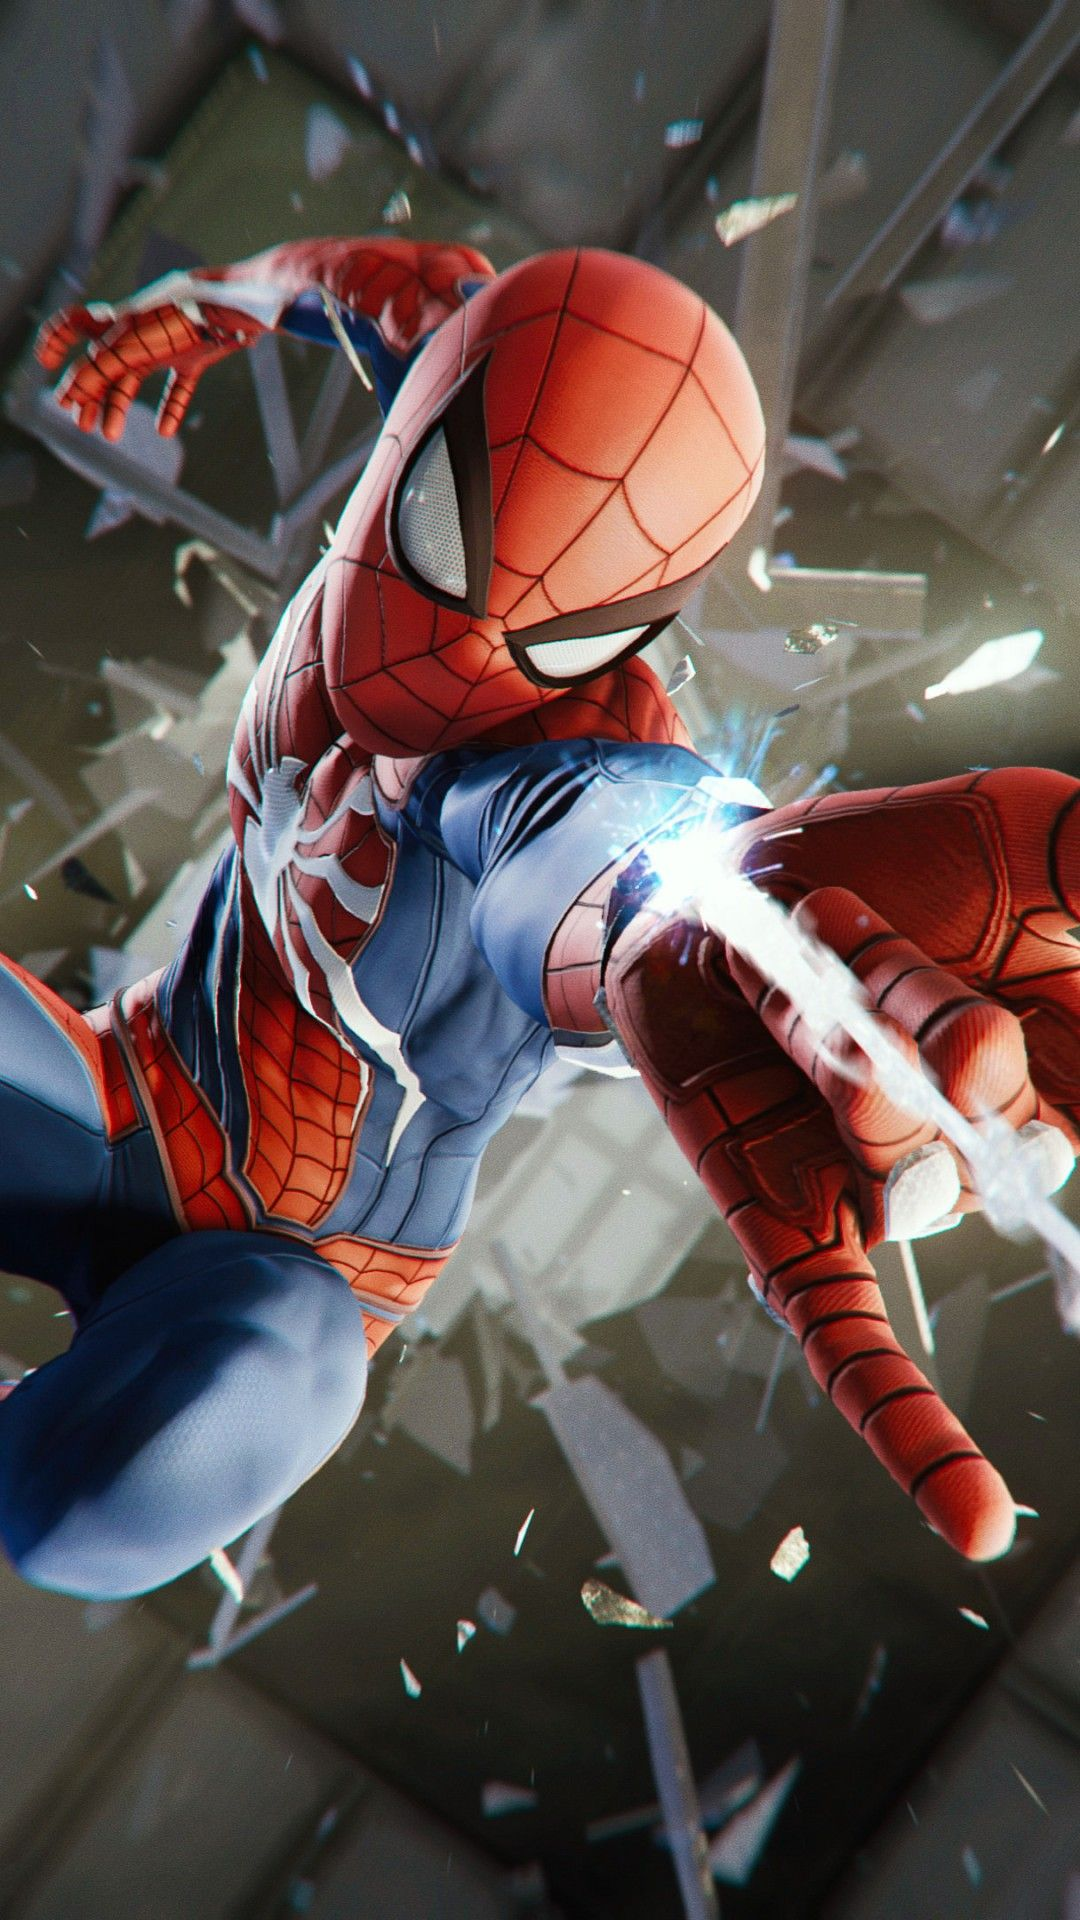 Pin By Game Photography On Spider Man Amazing Spiderman Marvel Spiderman Spiderman